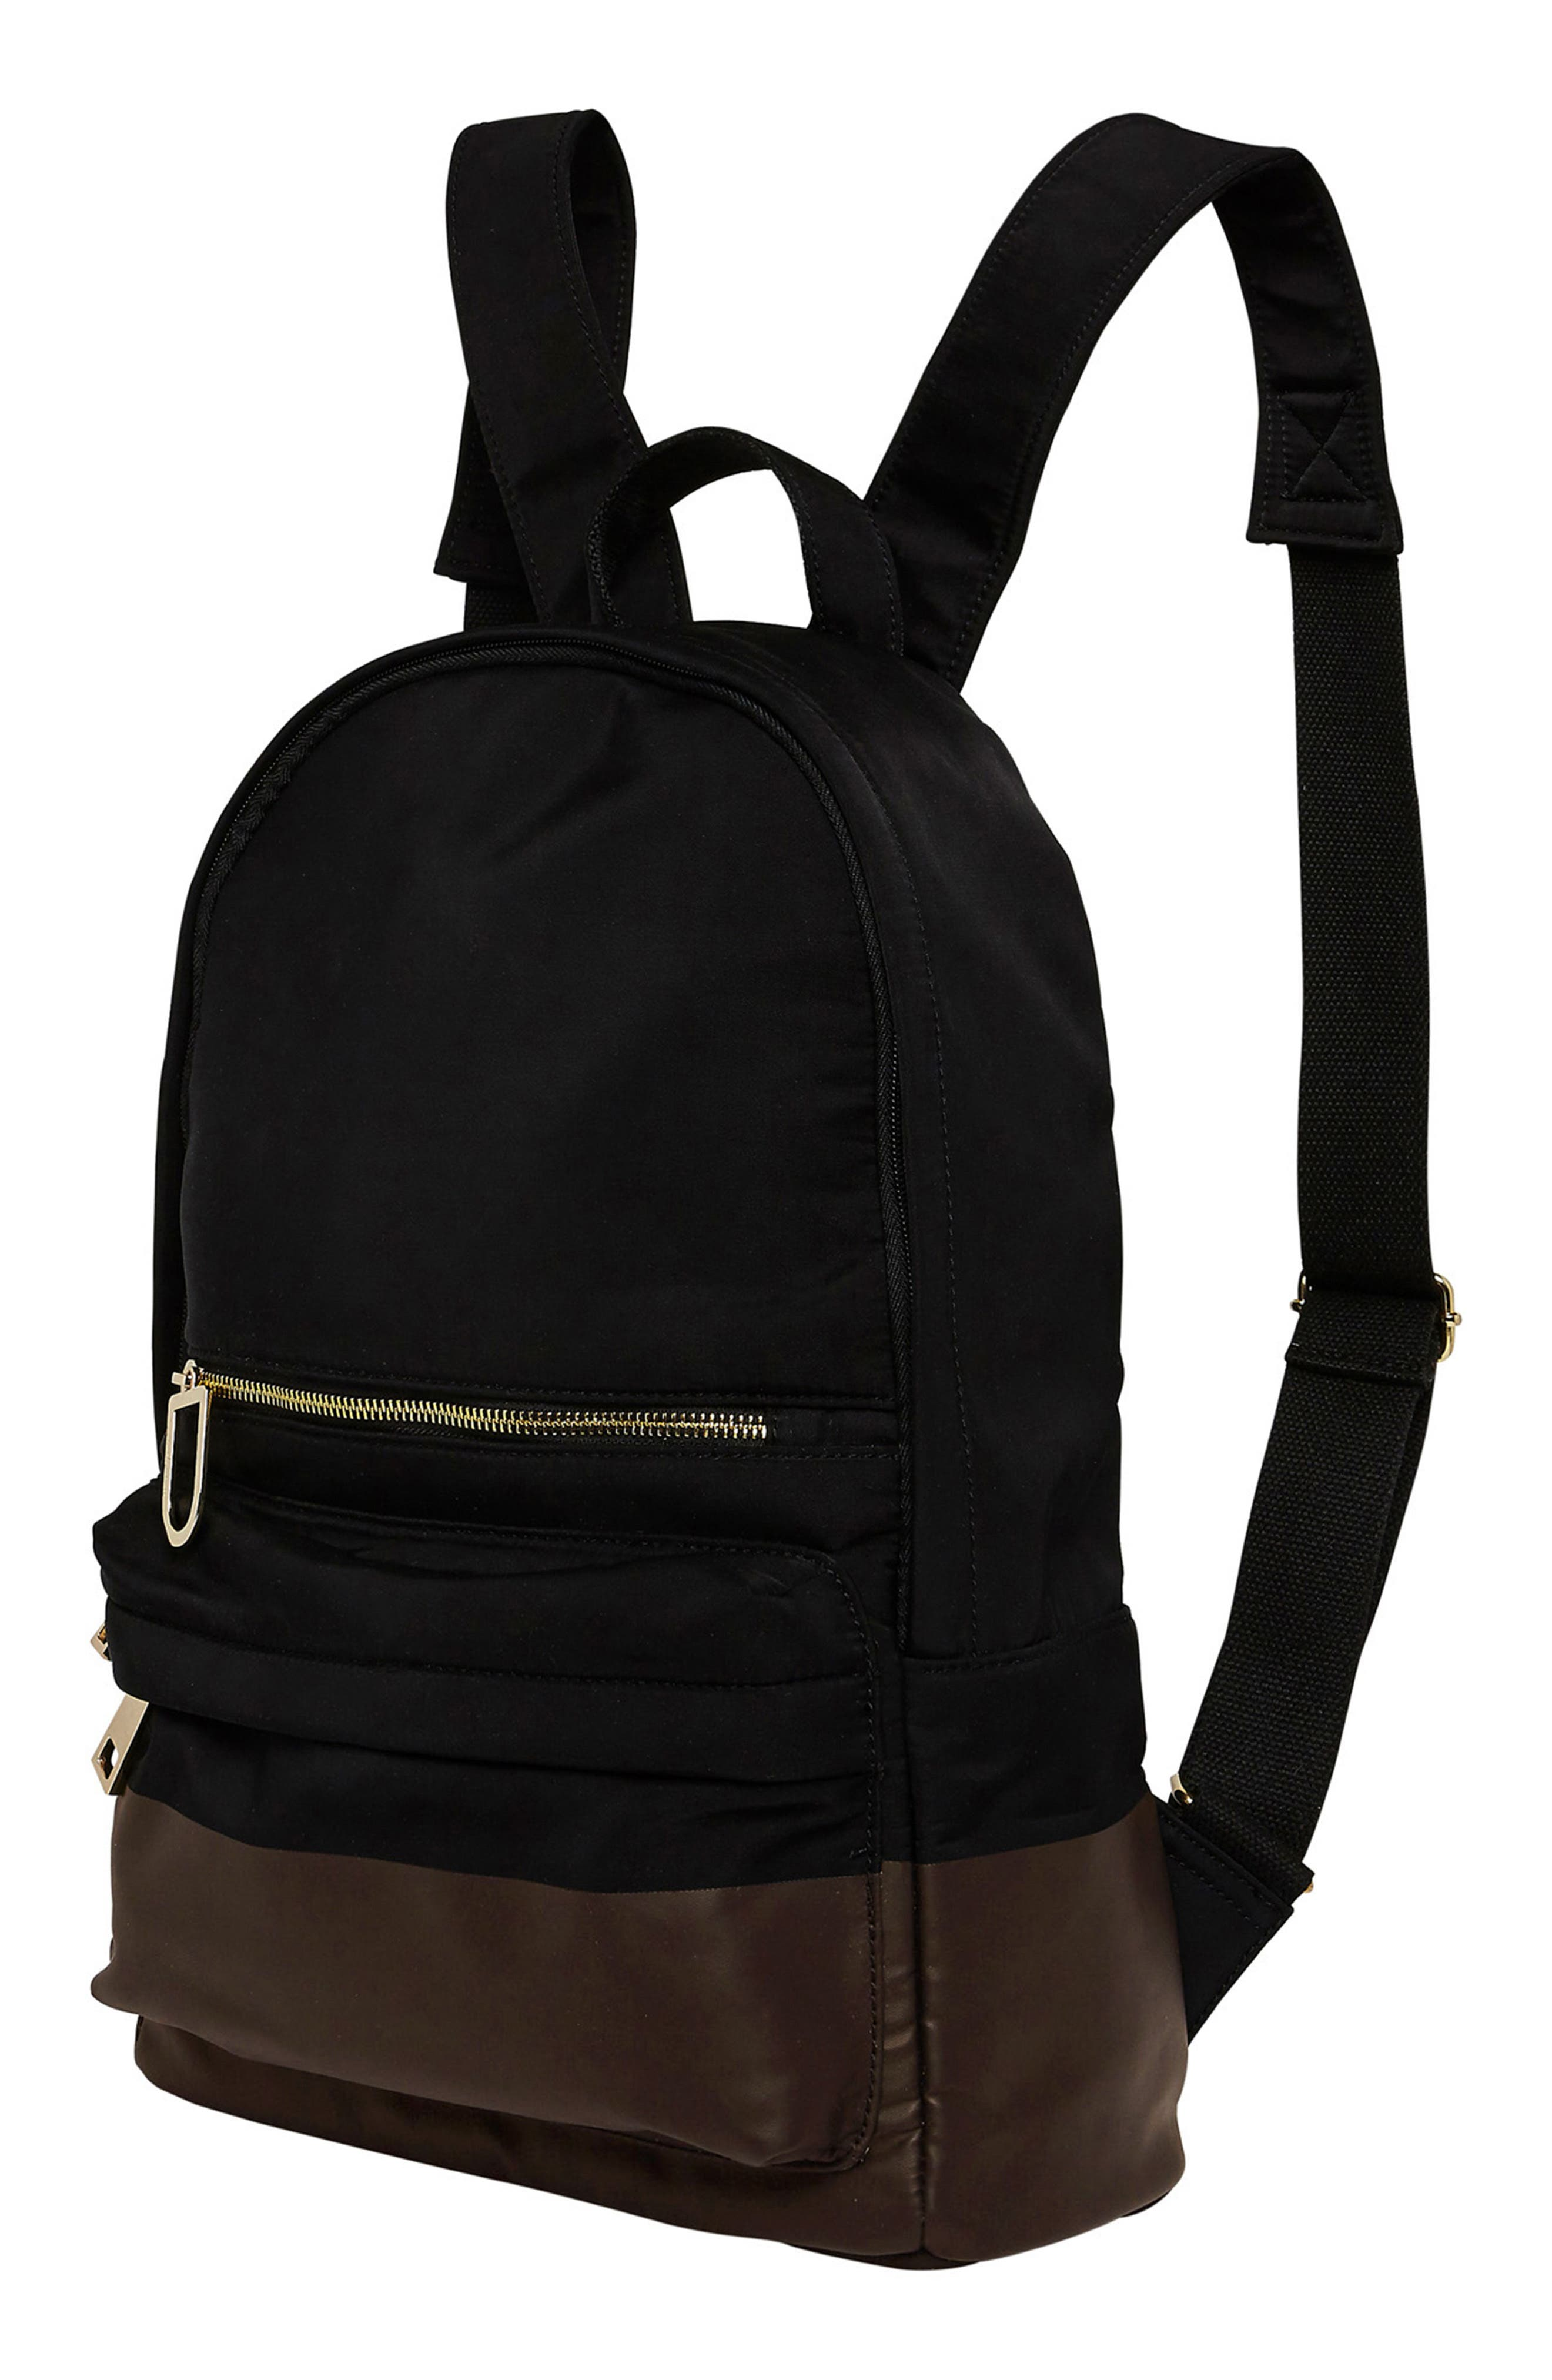 Own Beat Vegan Leather Backpack,                             Alternate thumbnail 4, color,                             001